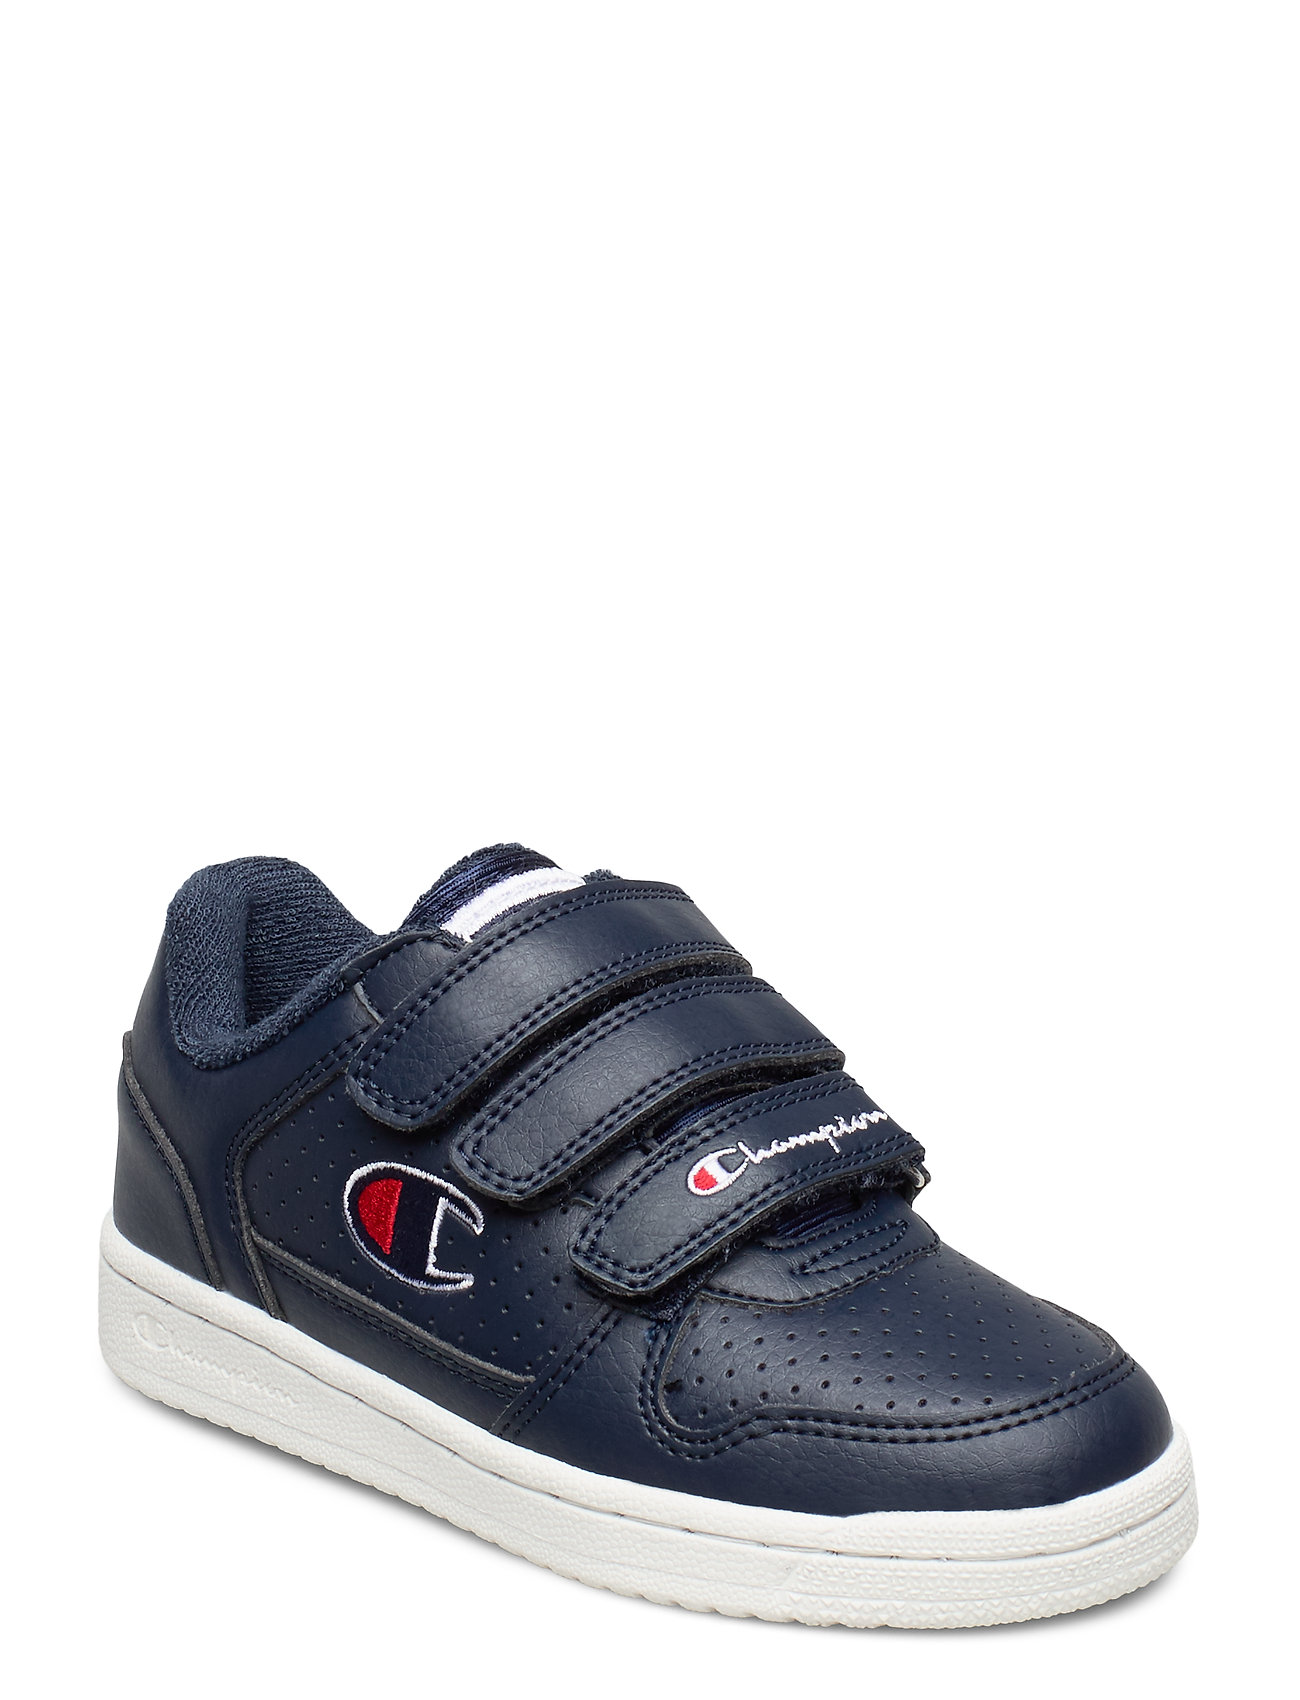 Image of Low Cut Shoe Chicago Low B Ps Sneakers Sko Blå Champion (3406313375)